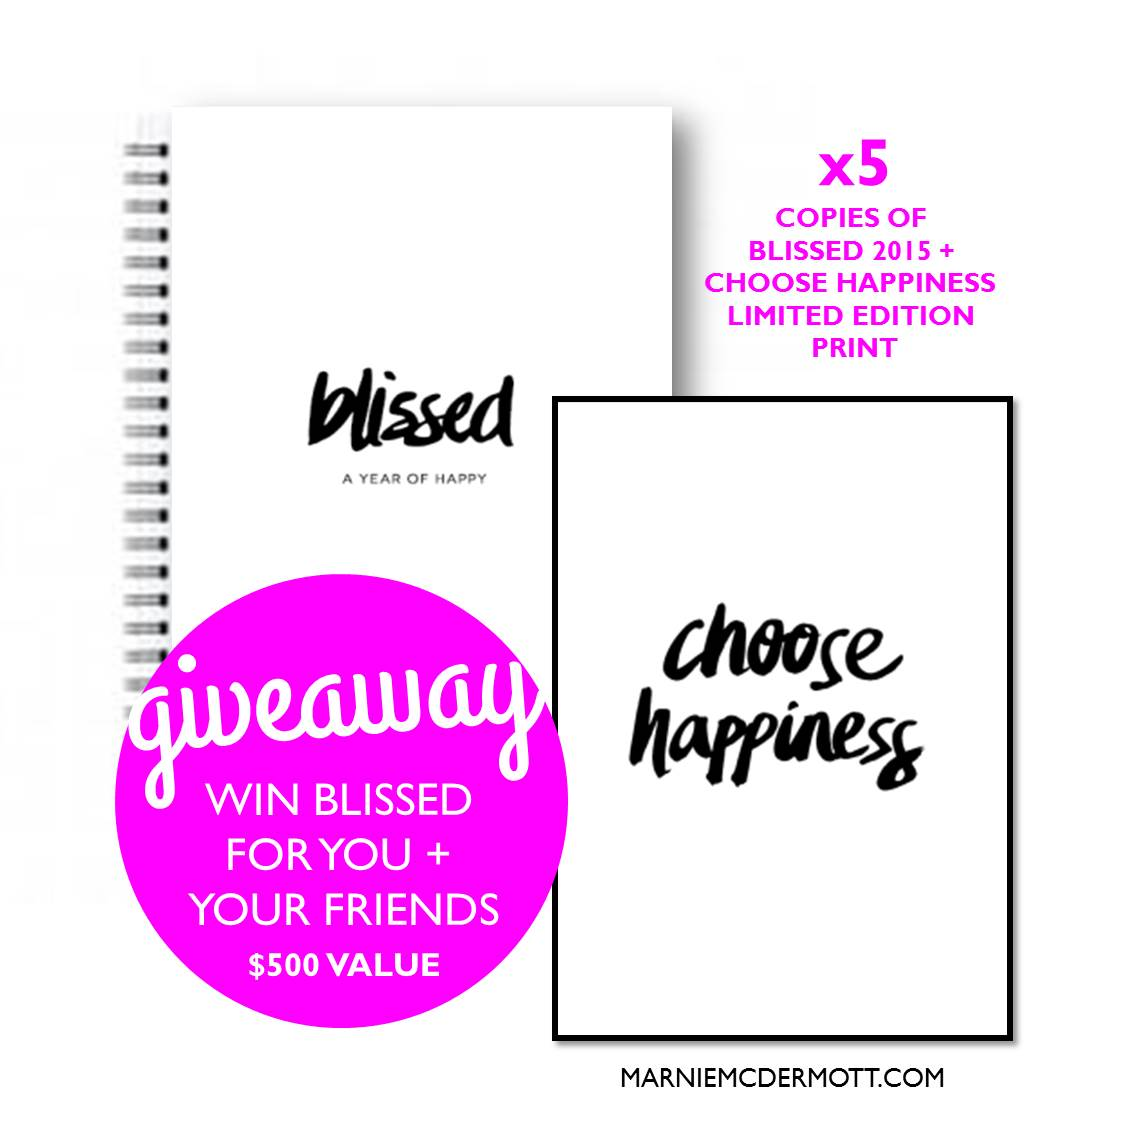 Win Blissed 2015 for you + your friends